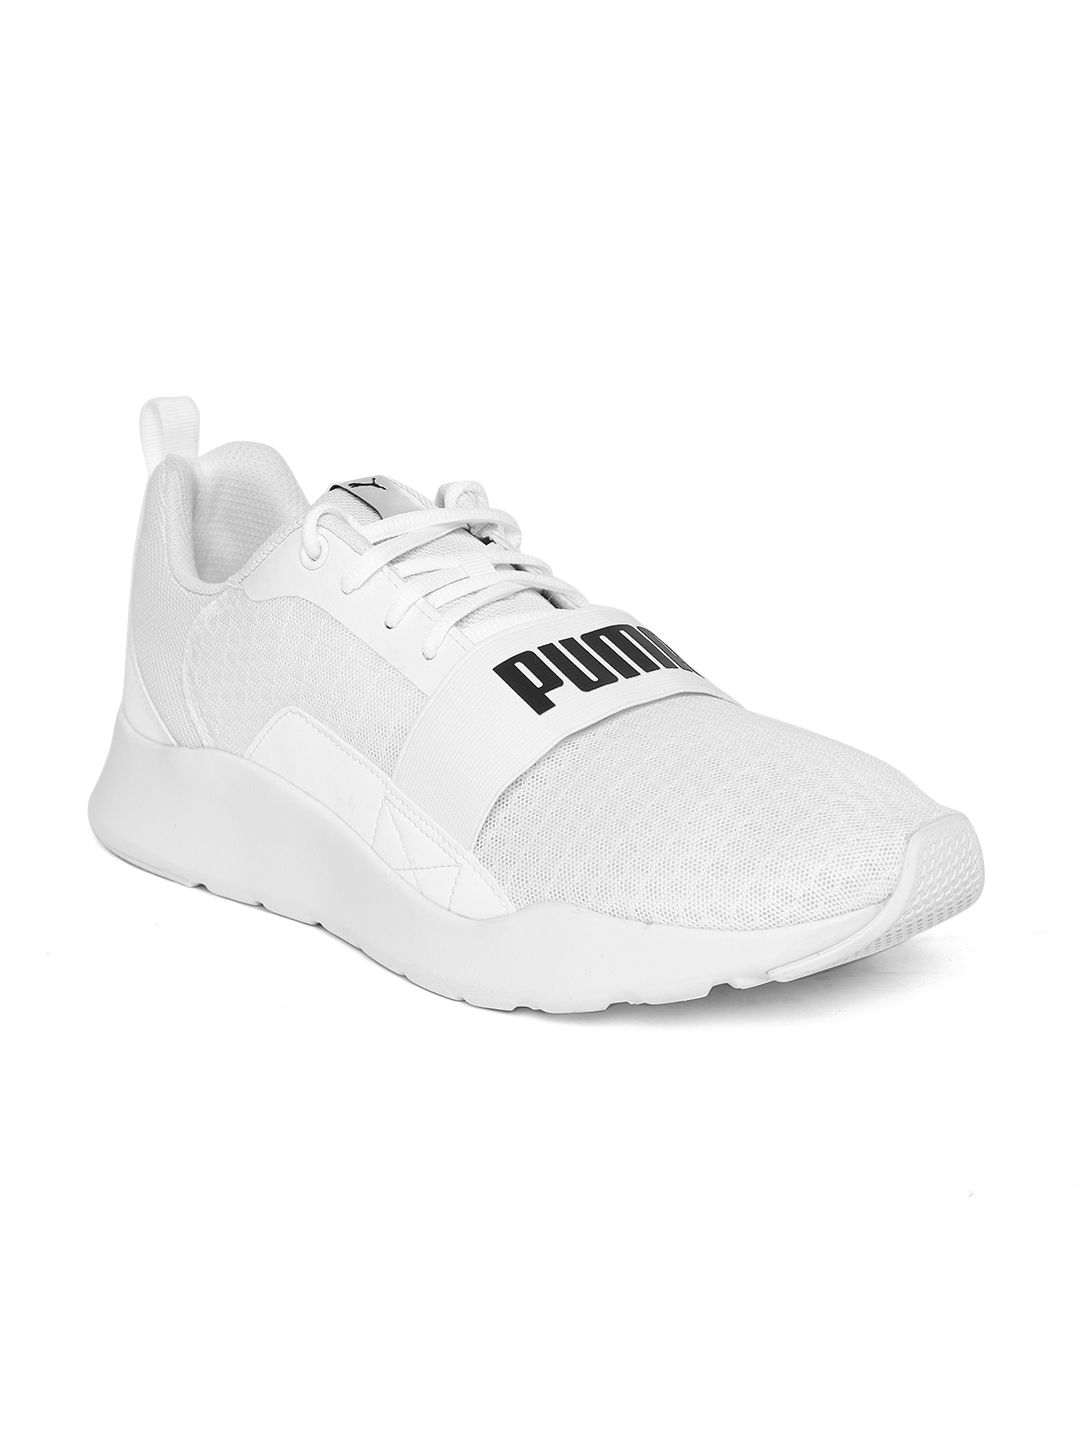 Puma Unisex White Wired Sneakers